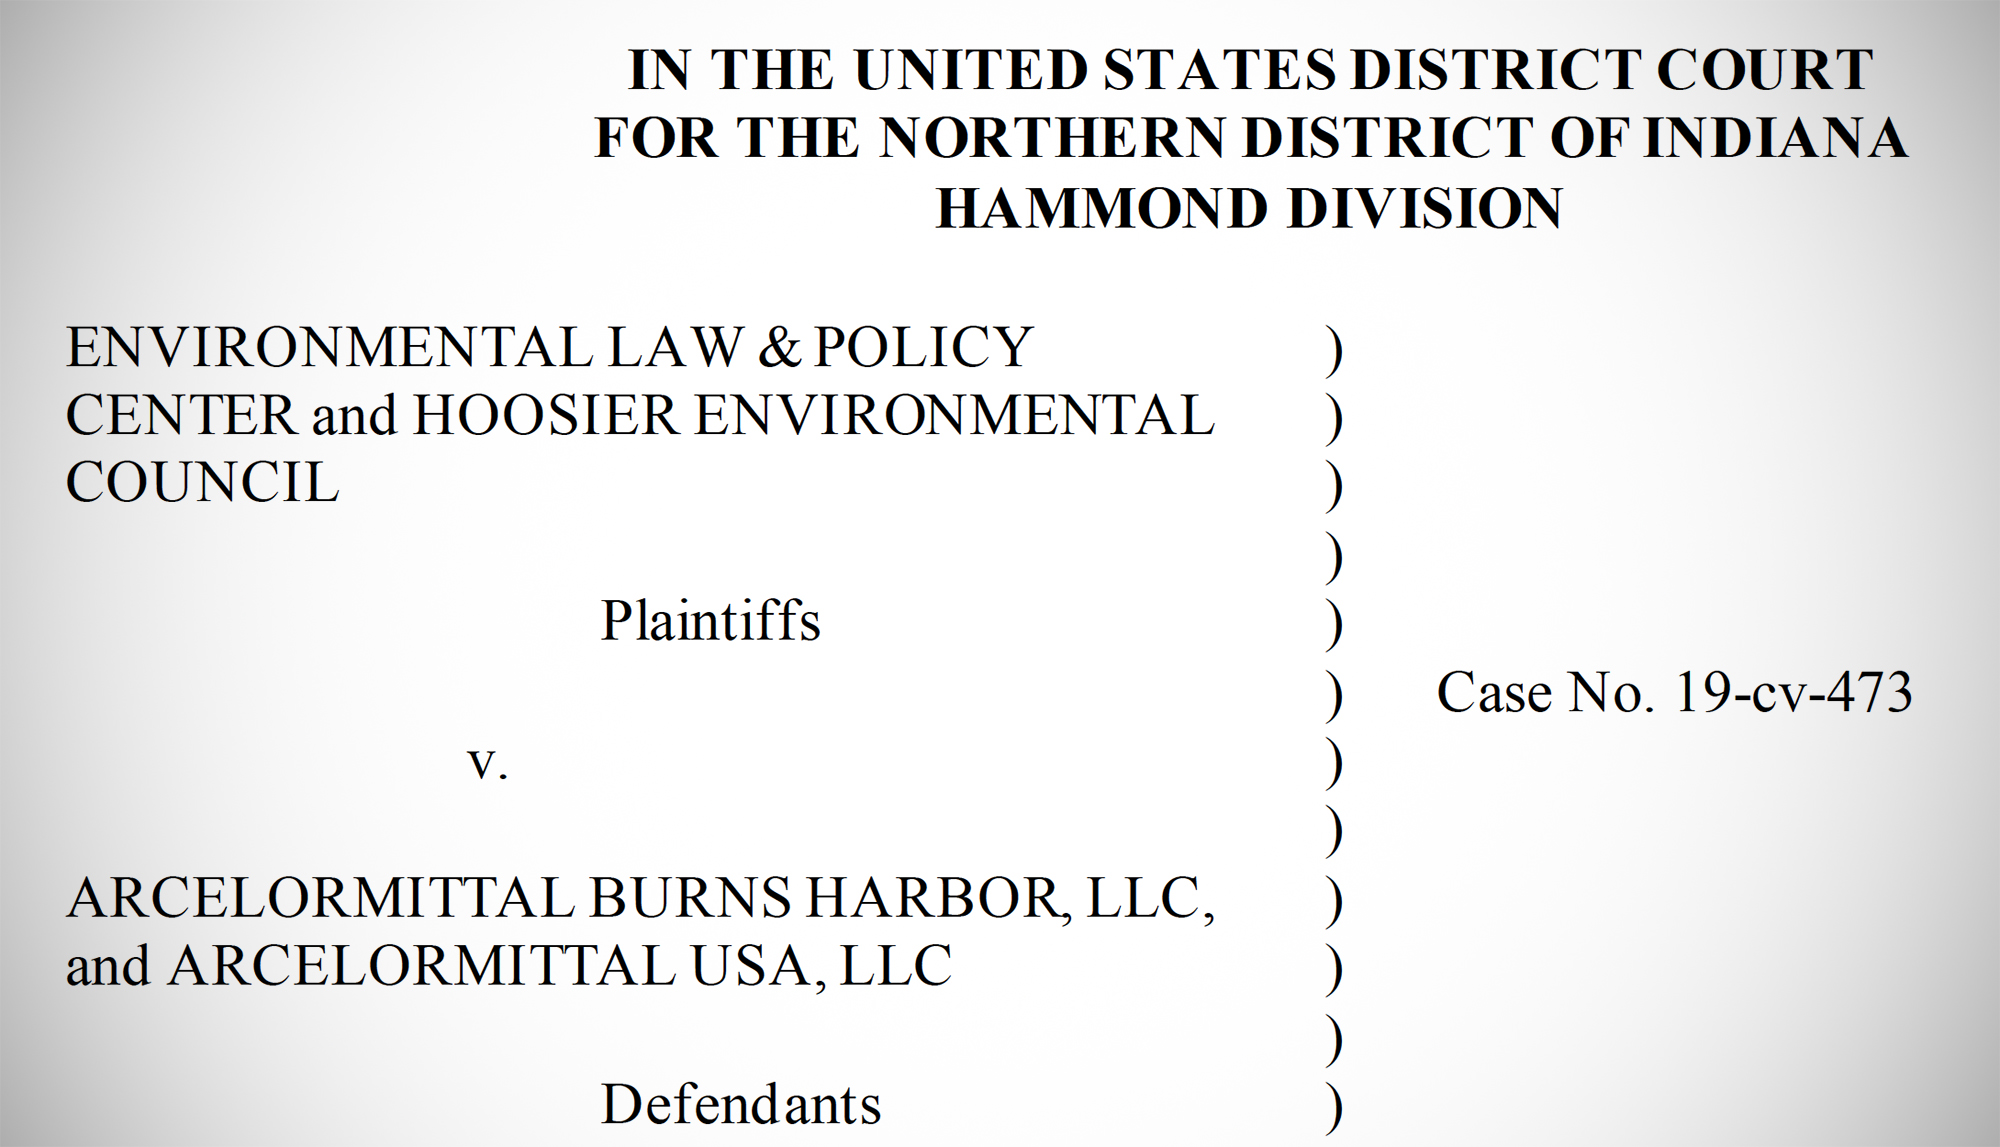 Lawsuit image